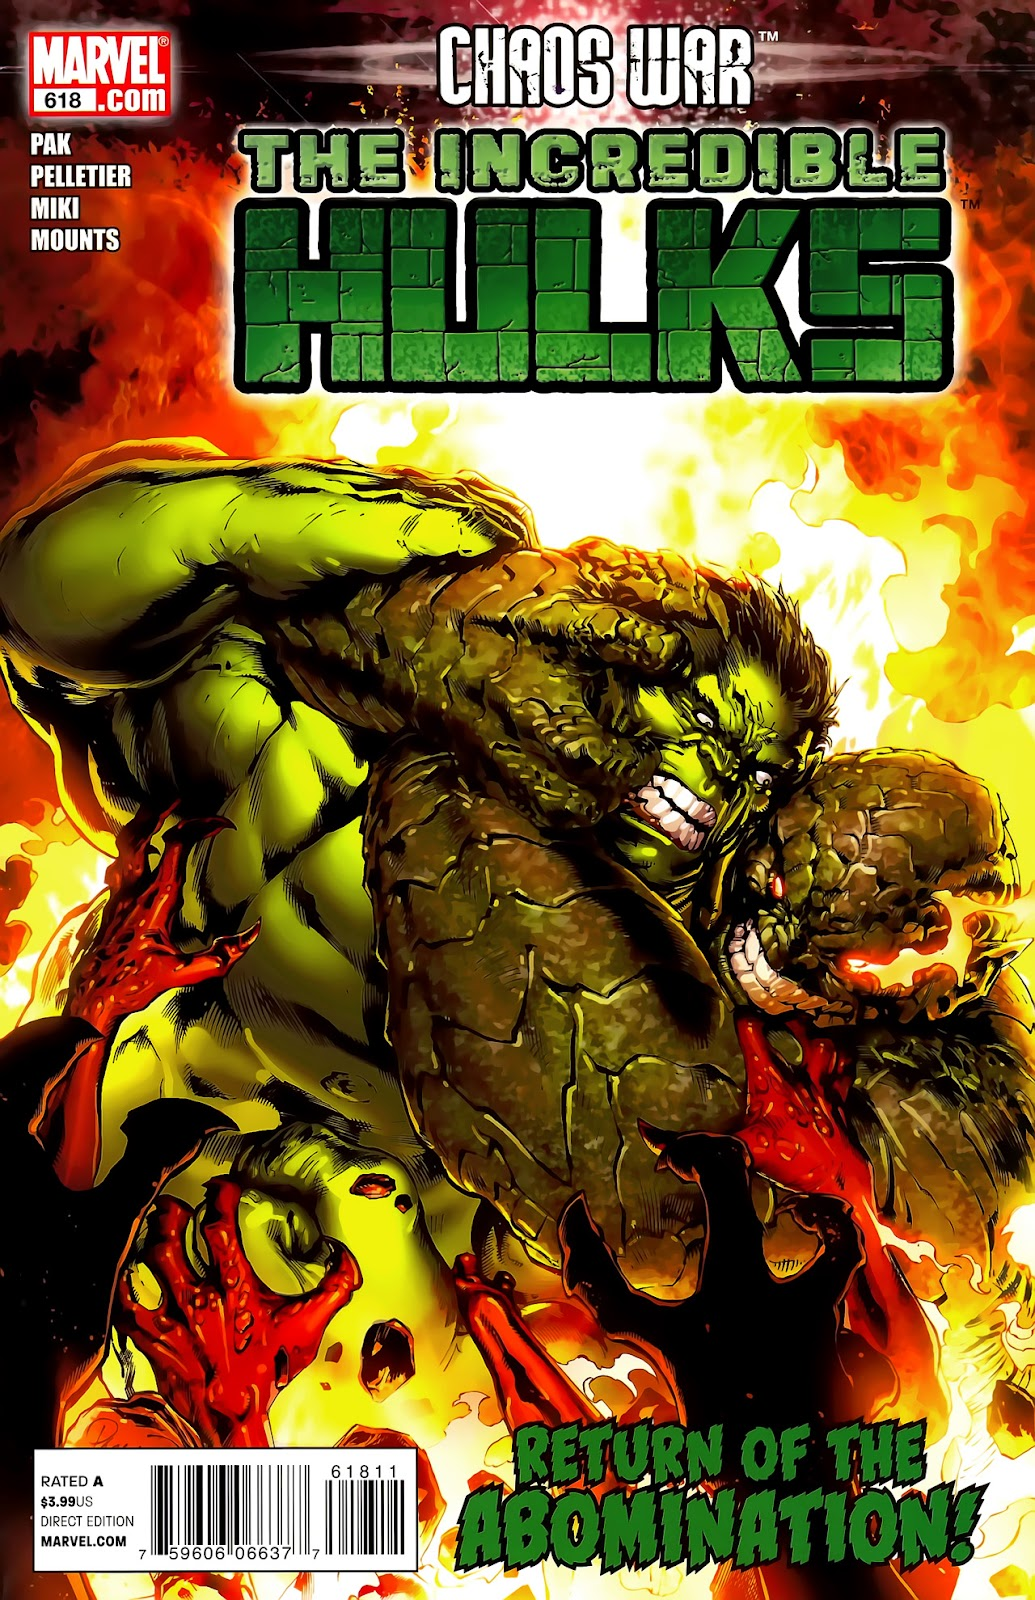 Incredible Hulks (2010) Issue #618 #8 - English 1